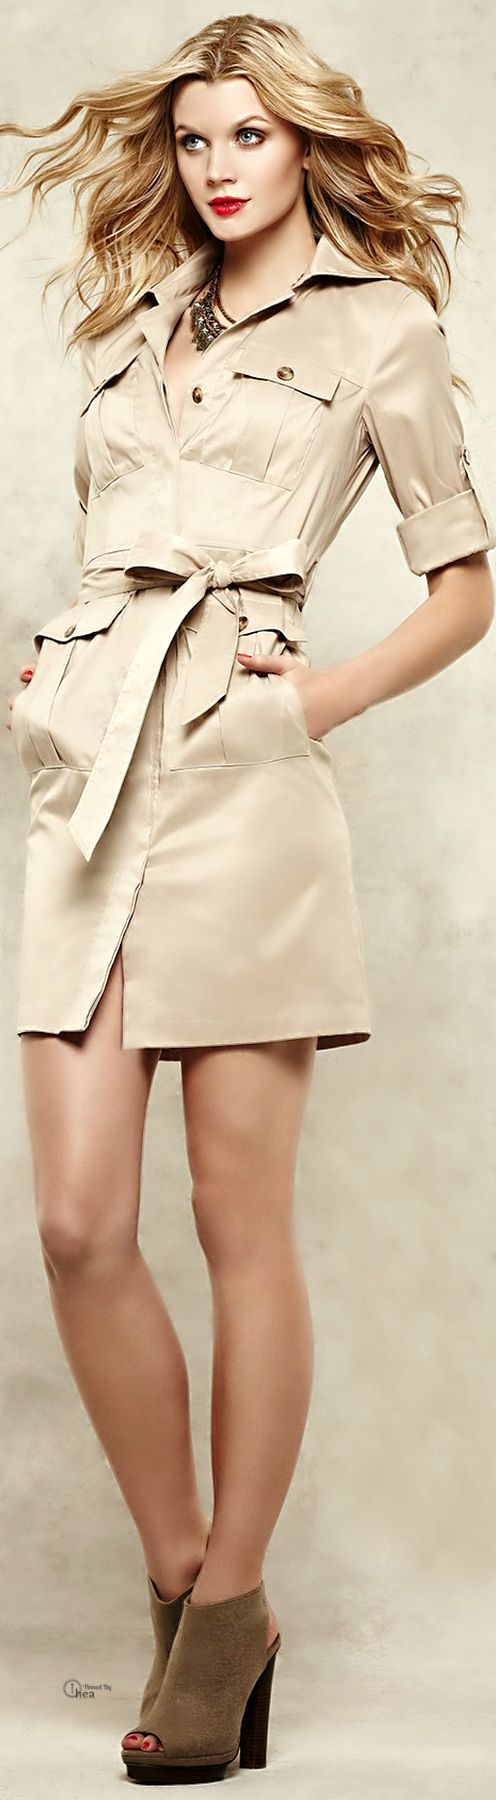 ✿~ PUT It in NEUTRALS! `✿⊱╮ ******Elegance Style. V******